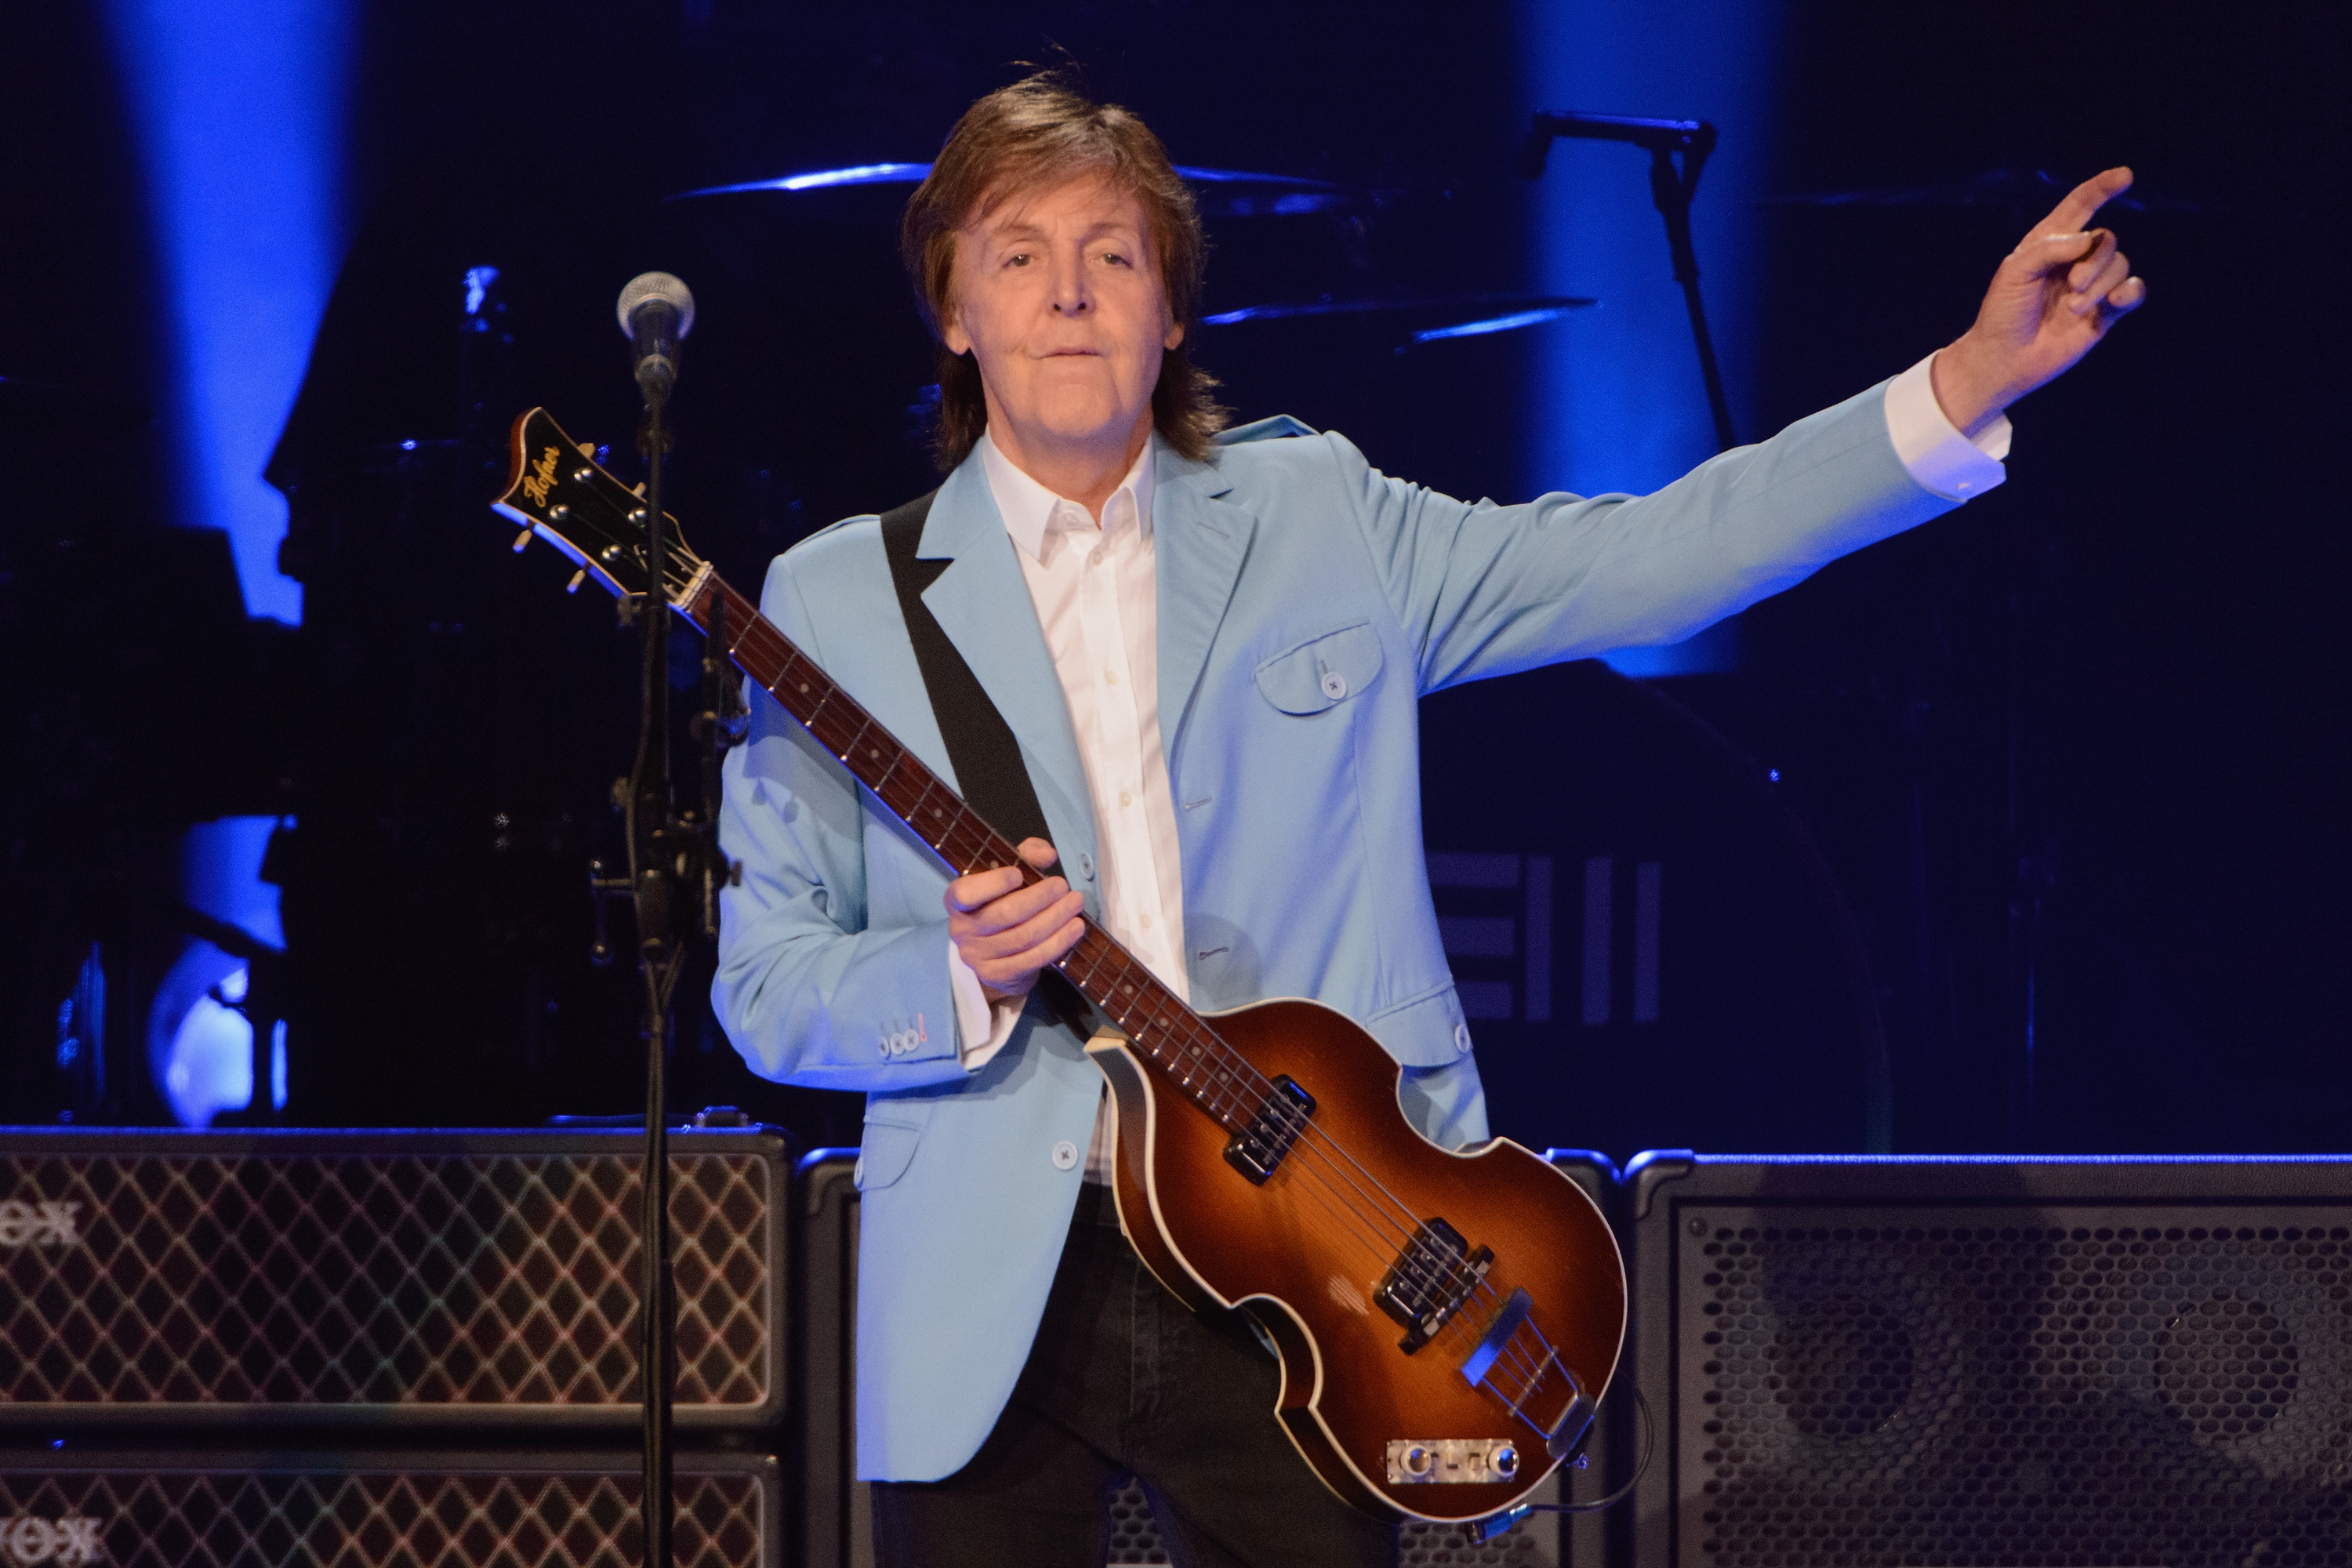 An Easy Game to Play: Paul McCartney Composes Video Game Soundtrack